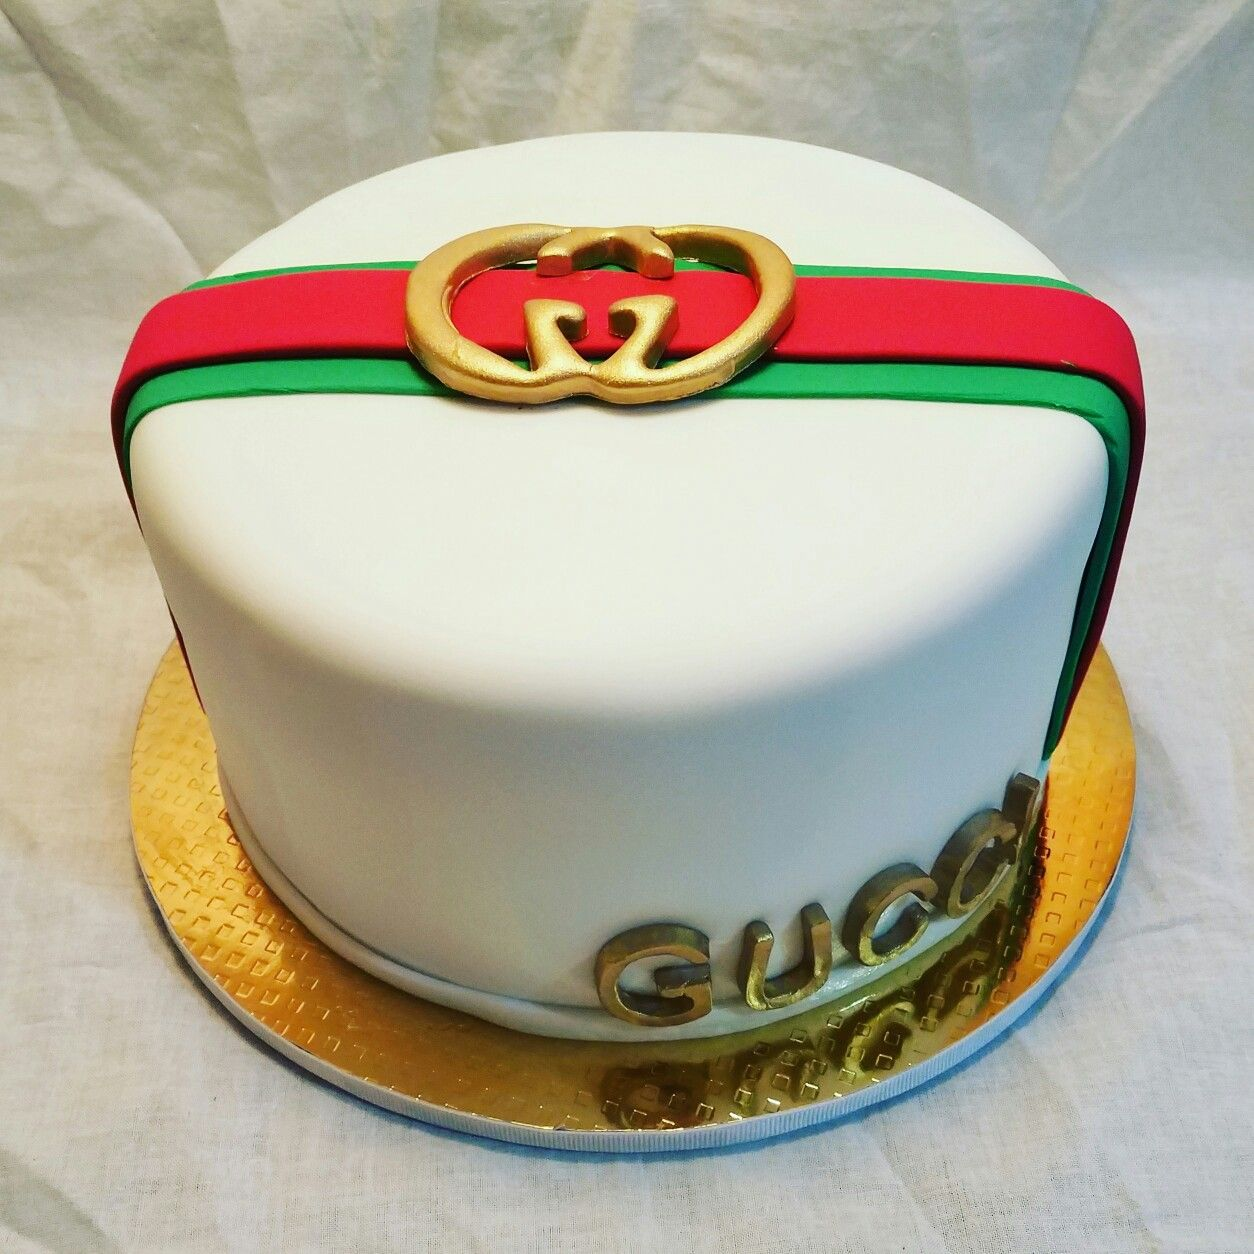 Gucci Cake Designs: Sisco's Sweets Cakes